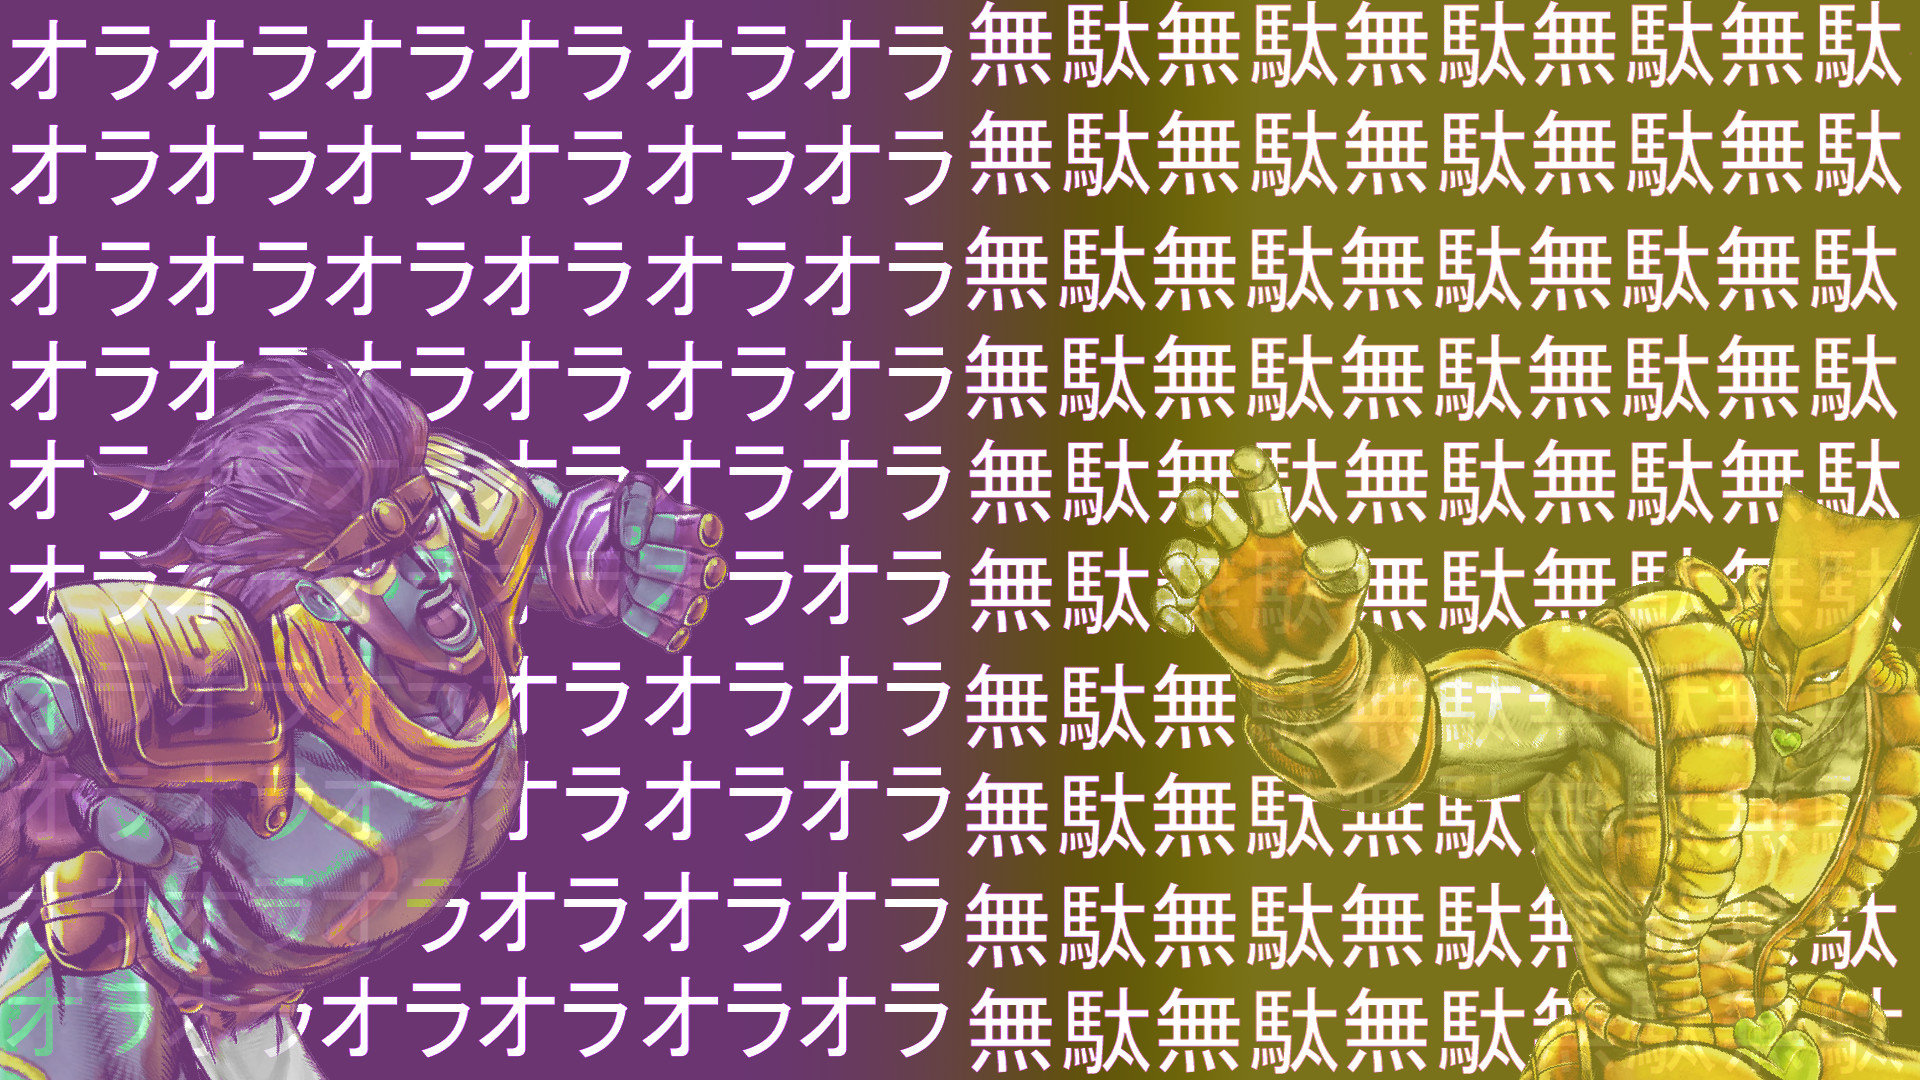 Awesome Jojo's Bizarre Adventure free wallpaper ID:296837 for hd 1080p PC